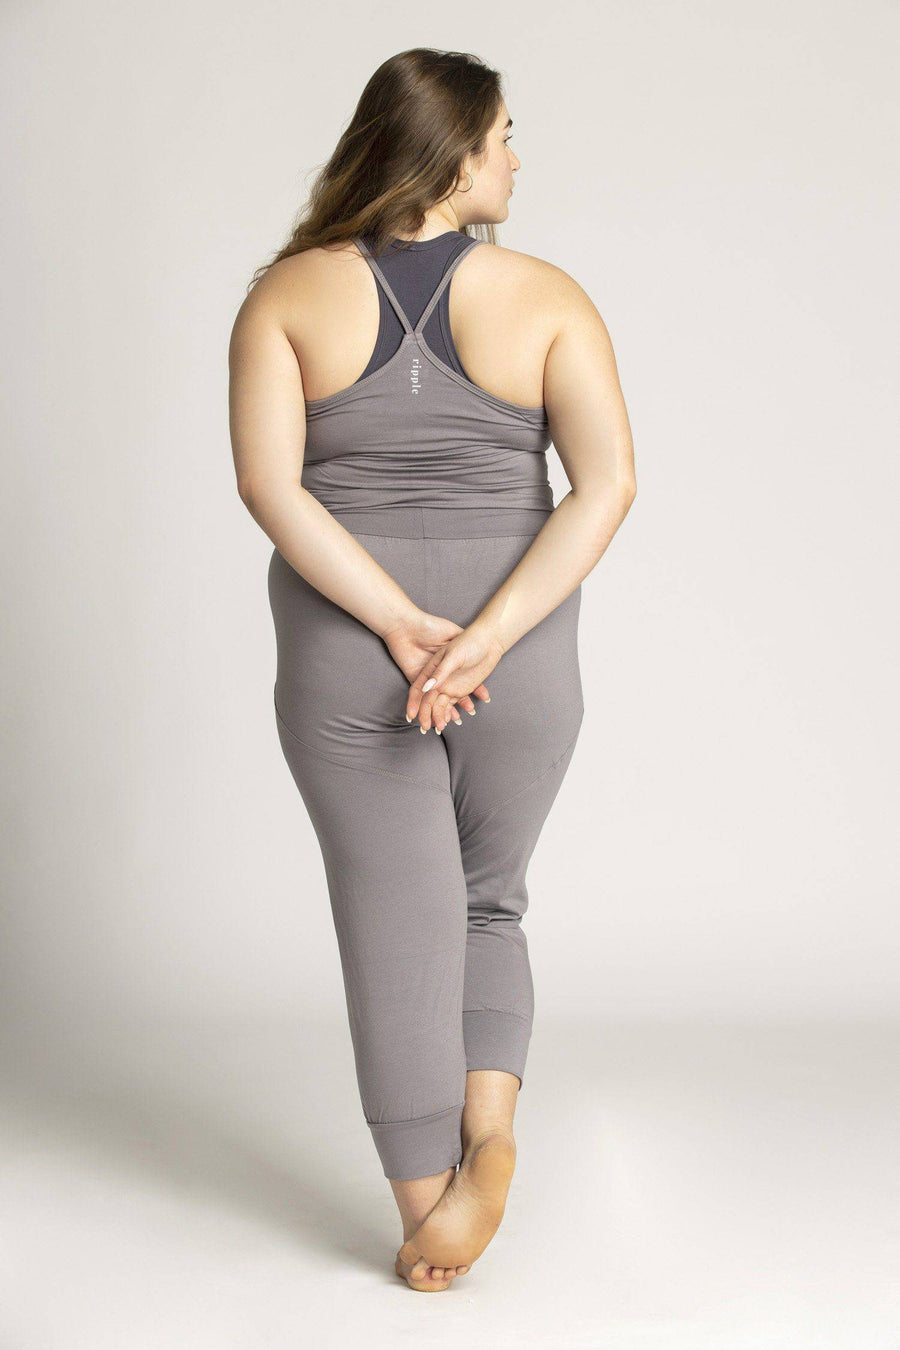 Yoga Jumpsuit - womens clothing - Ripple Yoga Wear